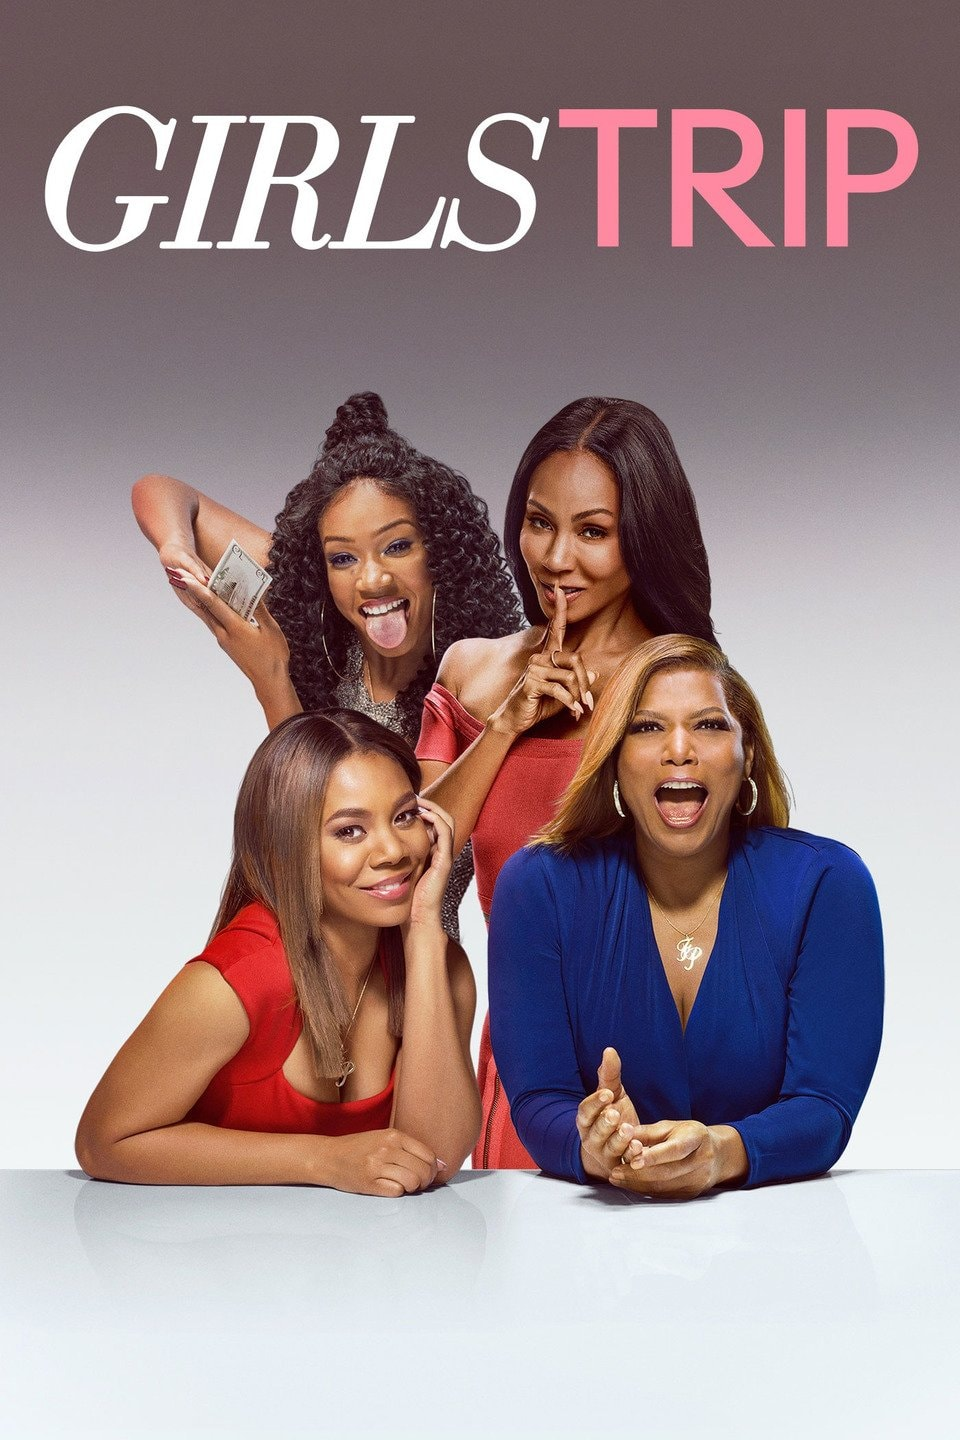 Watch the trailer for Girls Trip - Now Playing on Demand